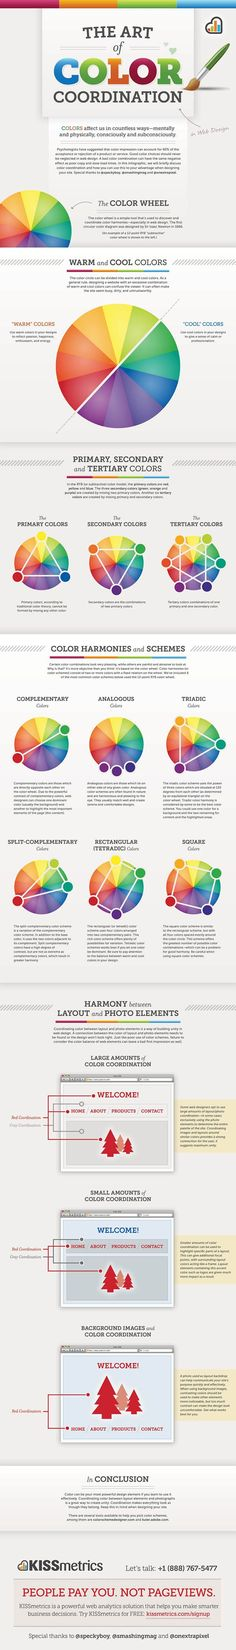 Design Tip: Color coordination is an important part of many design projects. Web Design being one of them! Check out this helpful Infographic to learn more!Web Design Tip: Color coordination is an important part of many design projects. Web Design being Graphisches Design, Graphic Design, Design Color, Cover Design, Interior Design, Design Layouts, Email Design, Blog Design, Design Elements